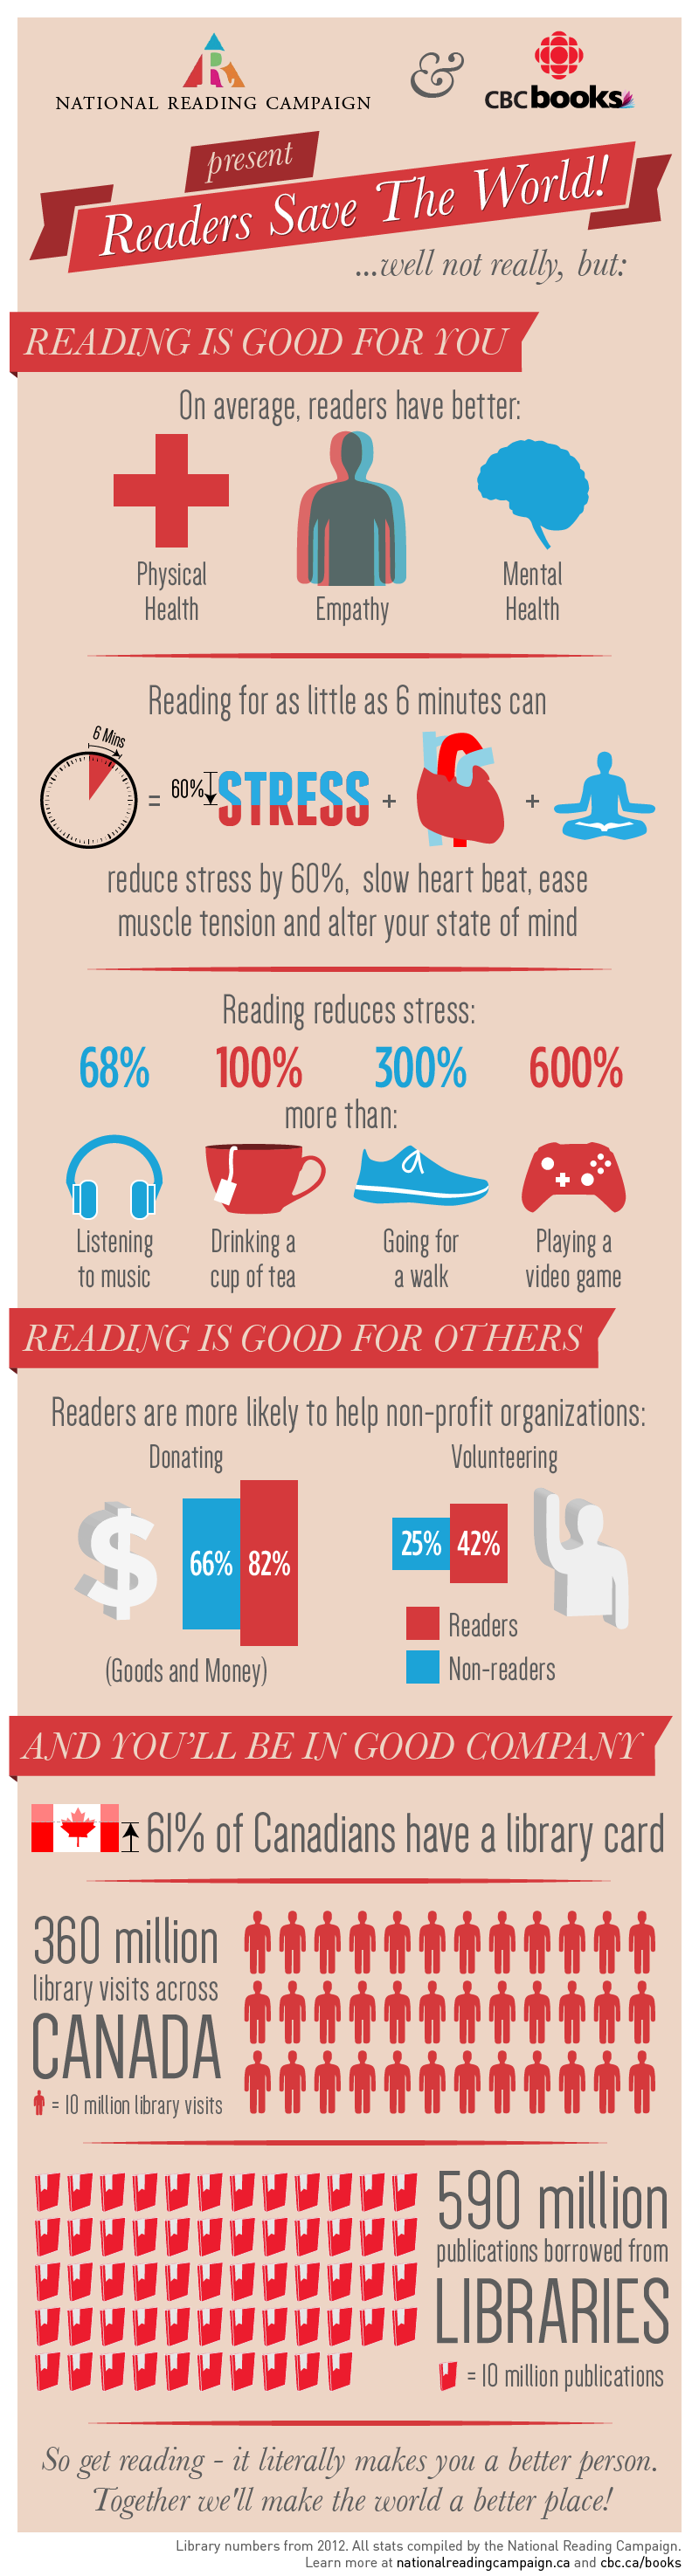 Reading is good for you study